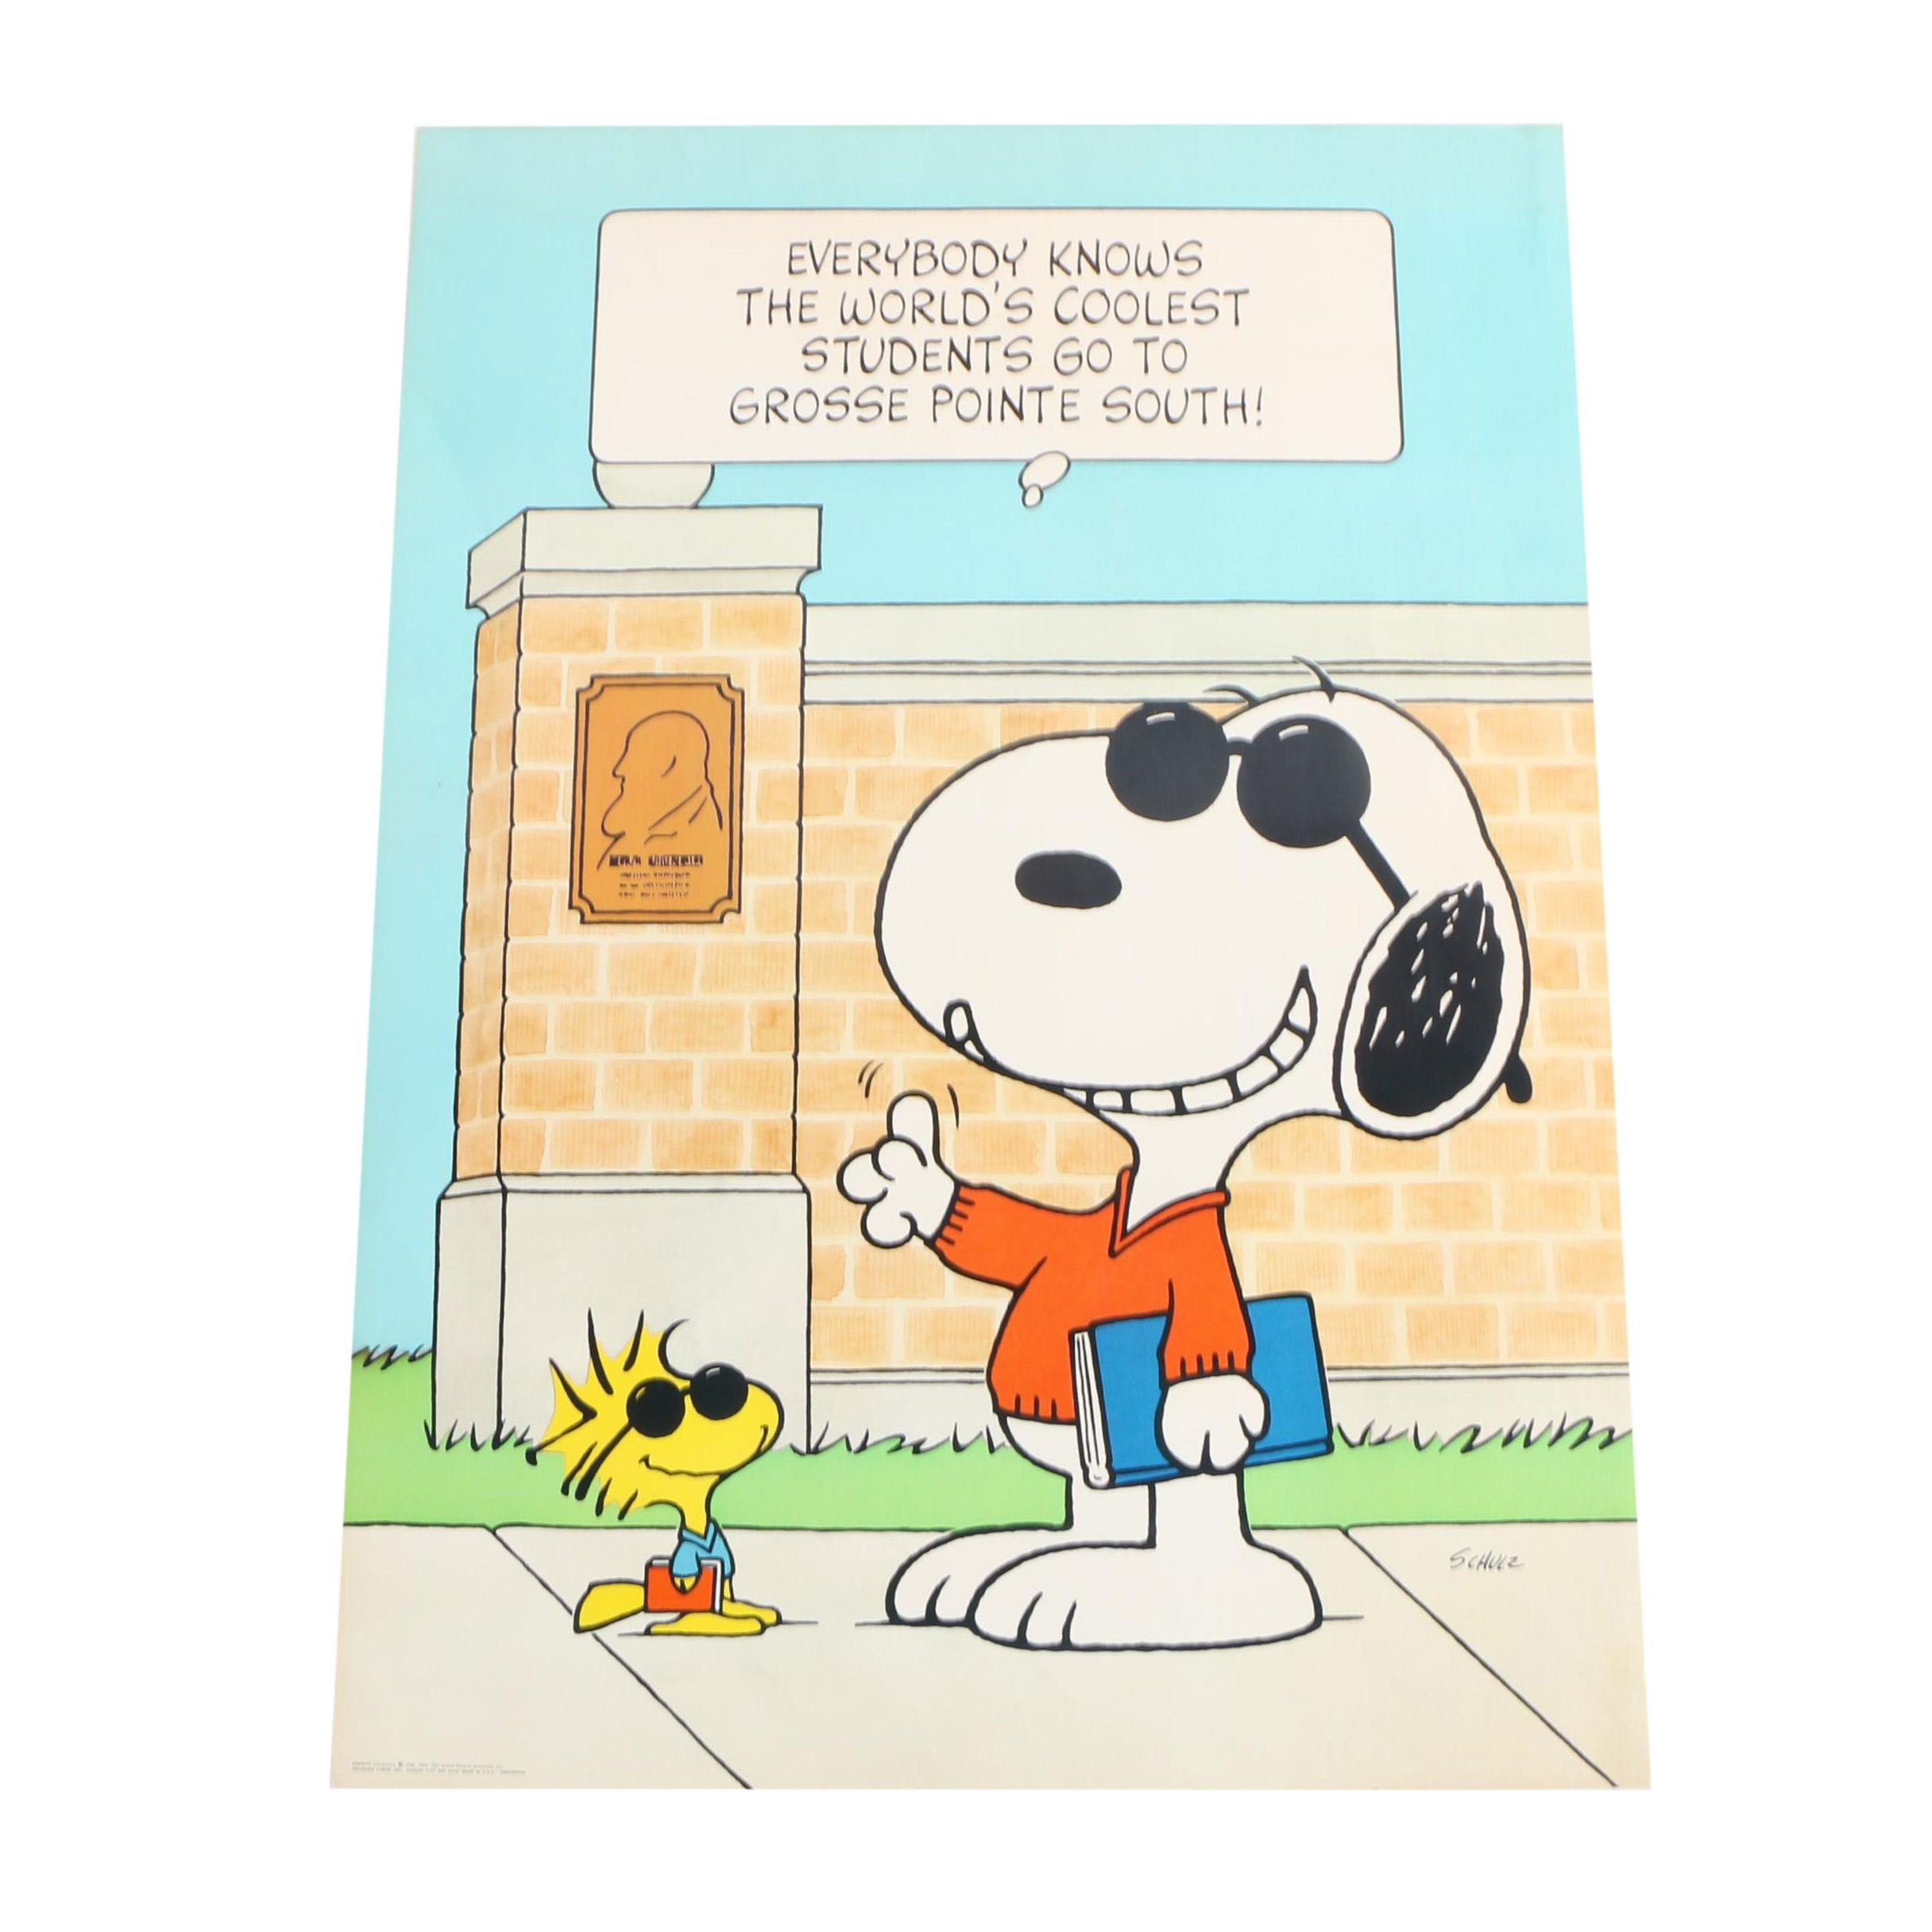 Offset Lithograph After Charles Schulz's Illustration of Snoopy as Joe Cool